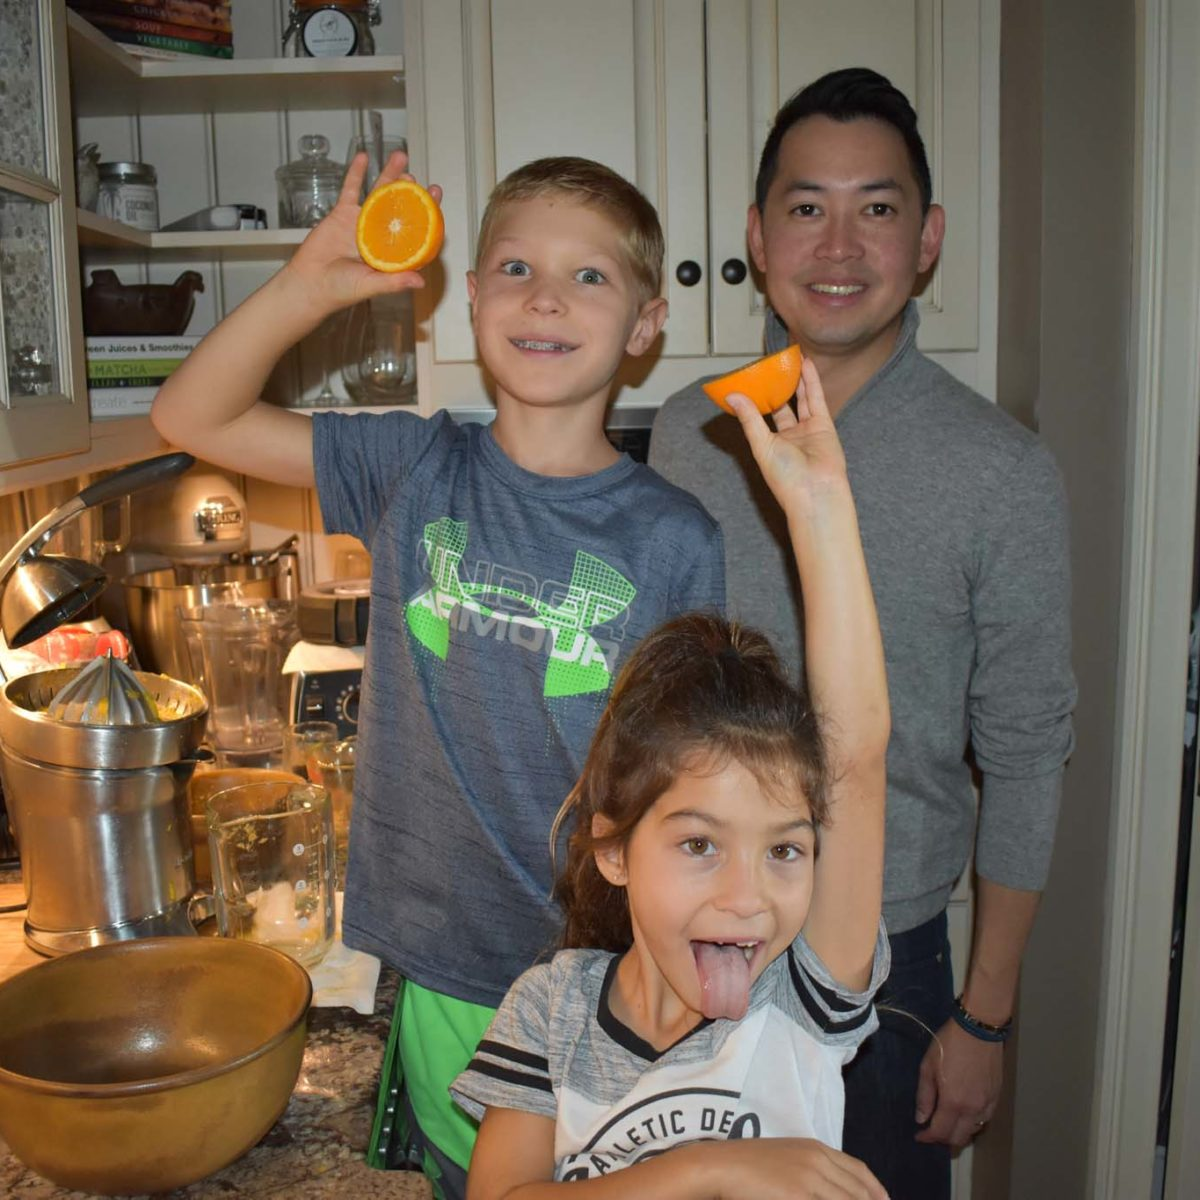 Dirk excited for freshly squeezed orange juice with our friends' son and daughter